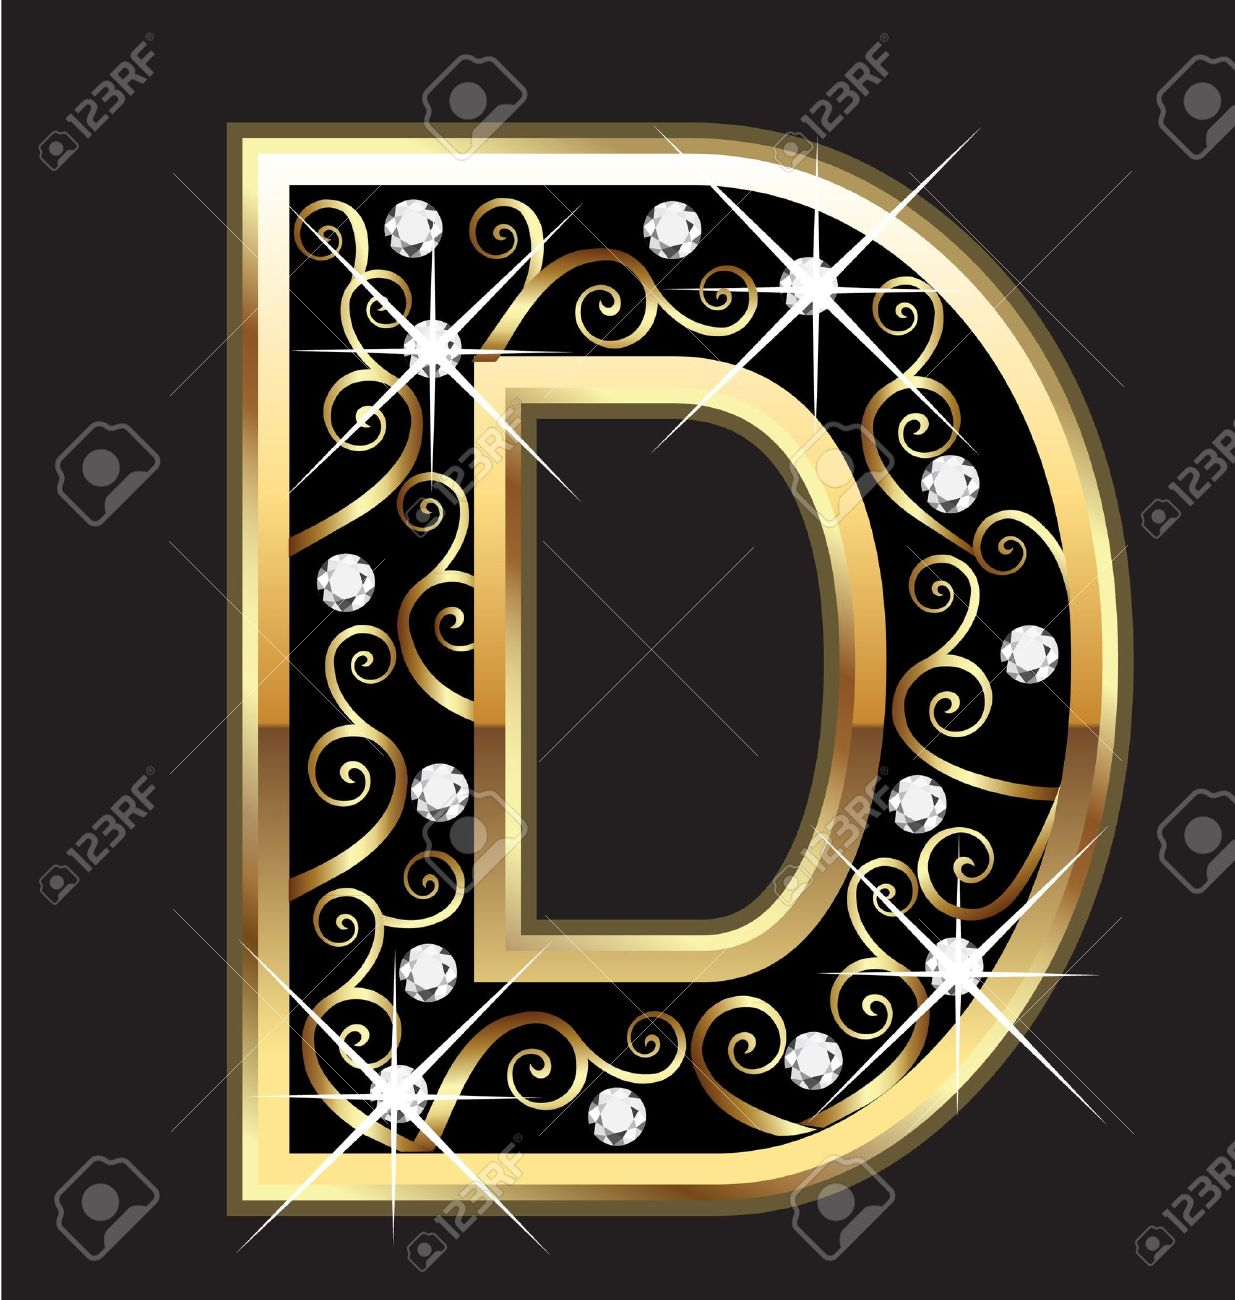 D Gold Letter With Swirly Ornaments Royalty Free Cliparts, Vectors ...